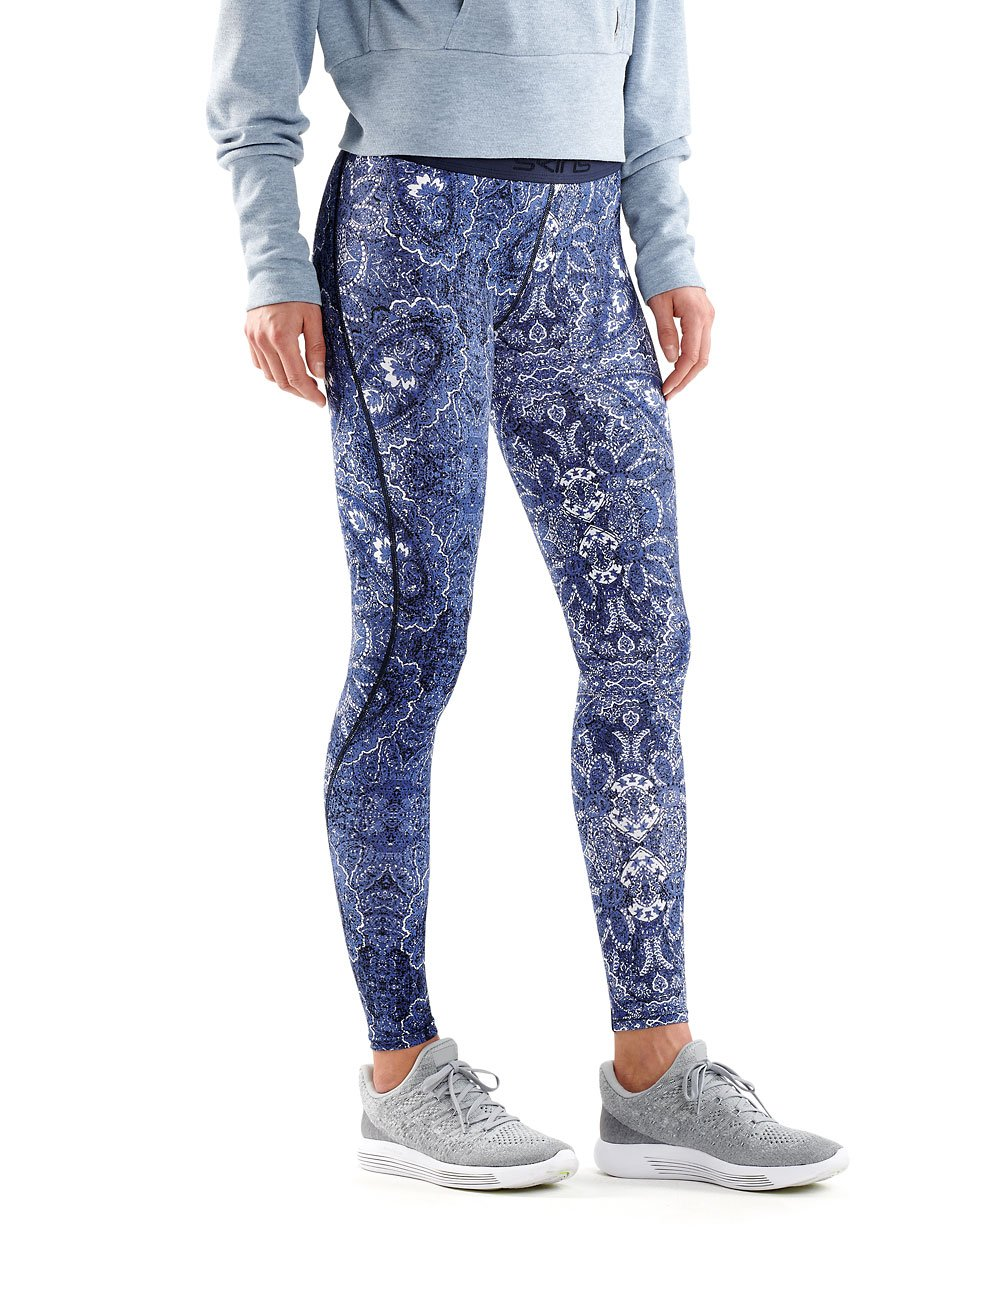 SKINS Donna DNAmic Sport Sport Sport Recovery Leggings da Donna, Donna, DNAmic Sport Recovery, Kasbah 13d9a3